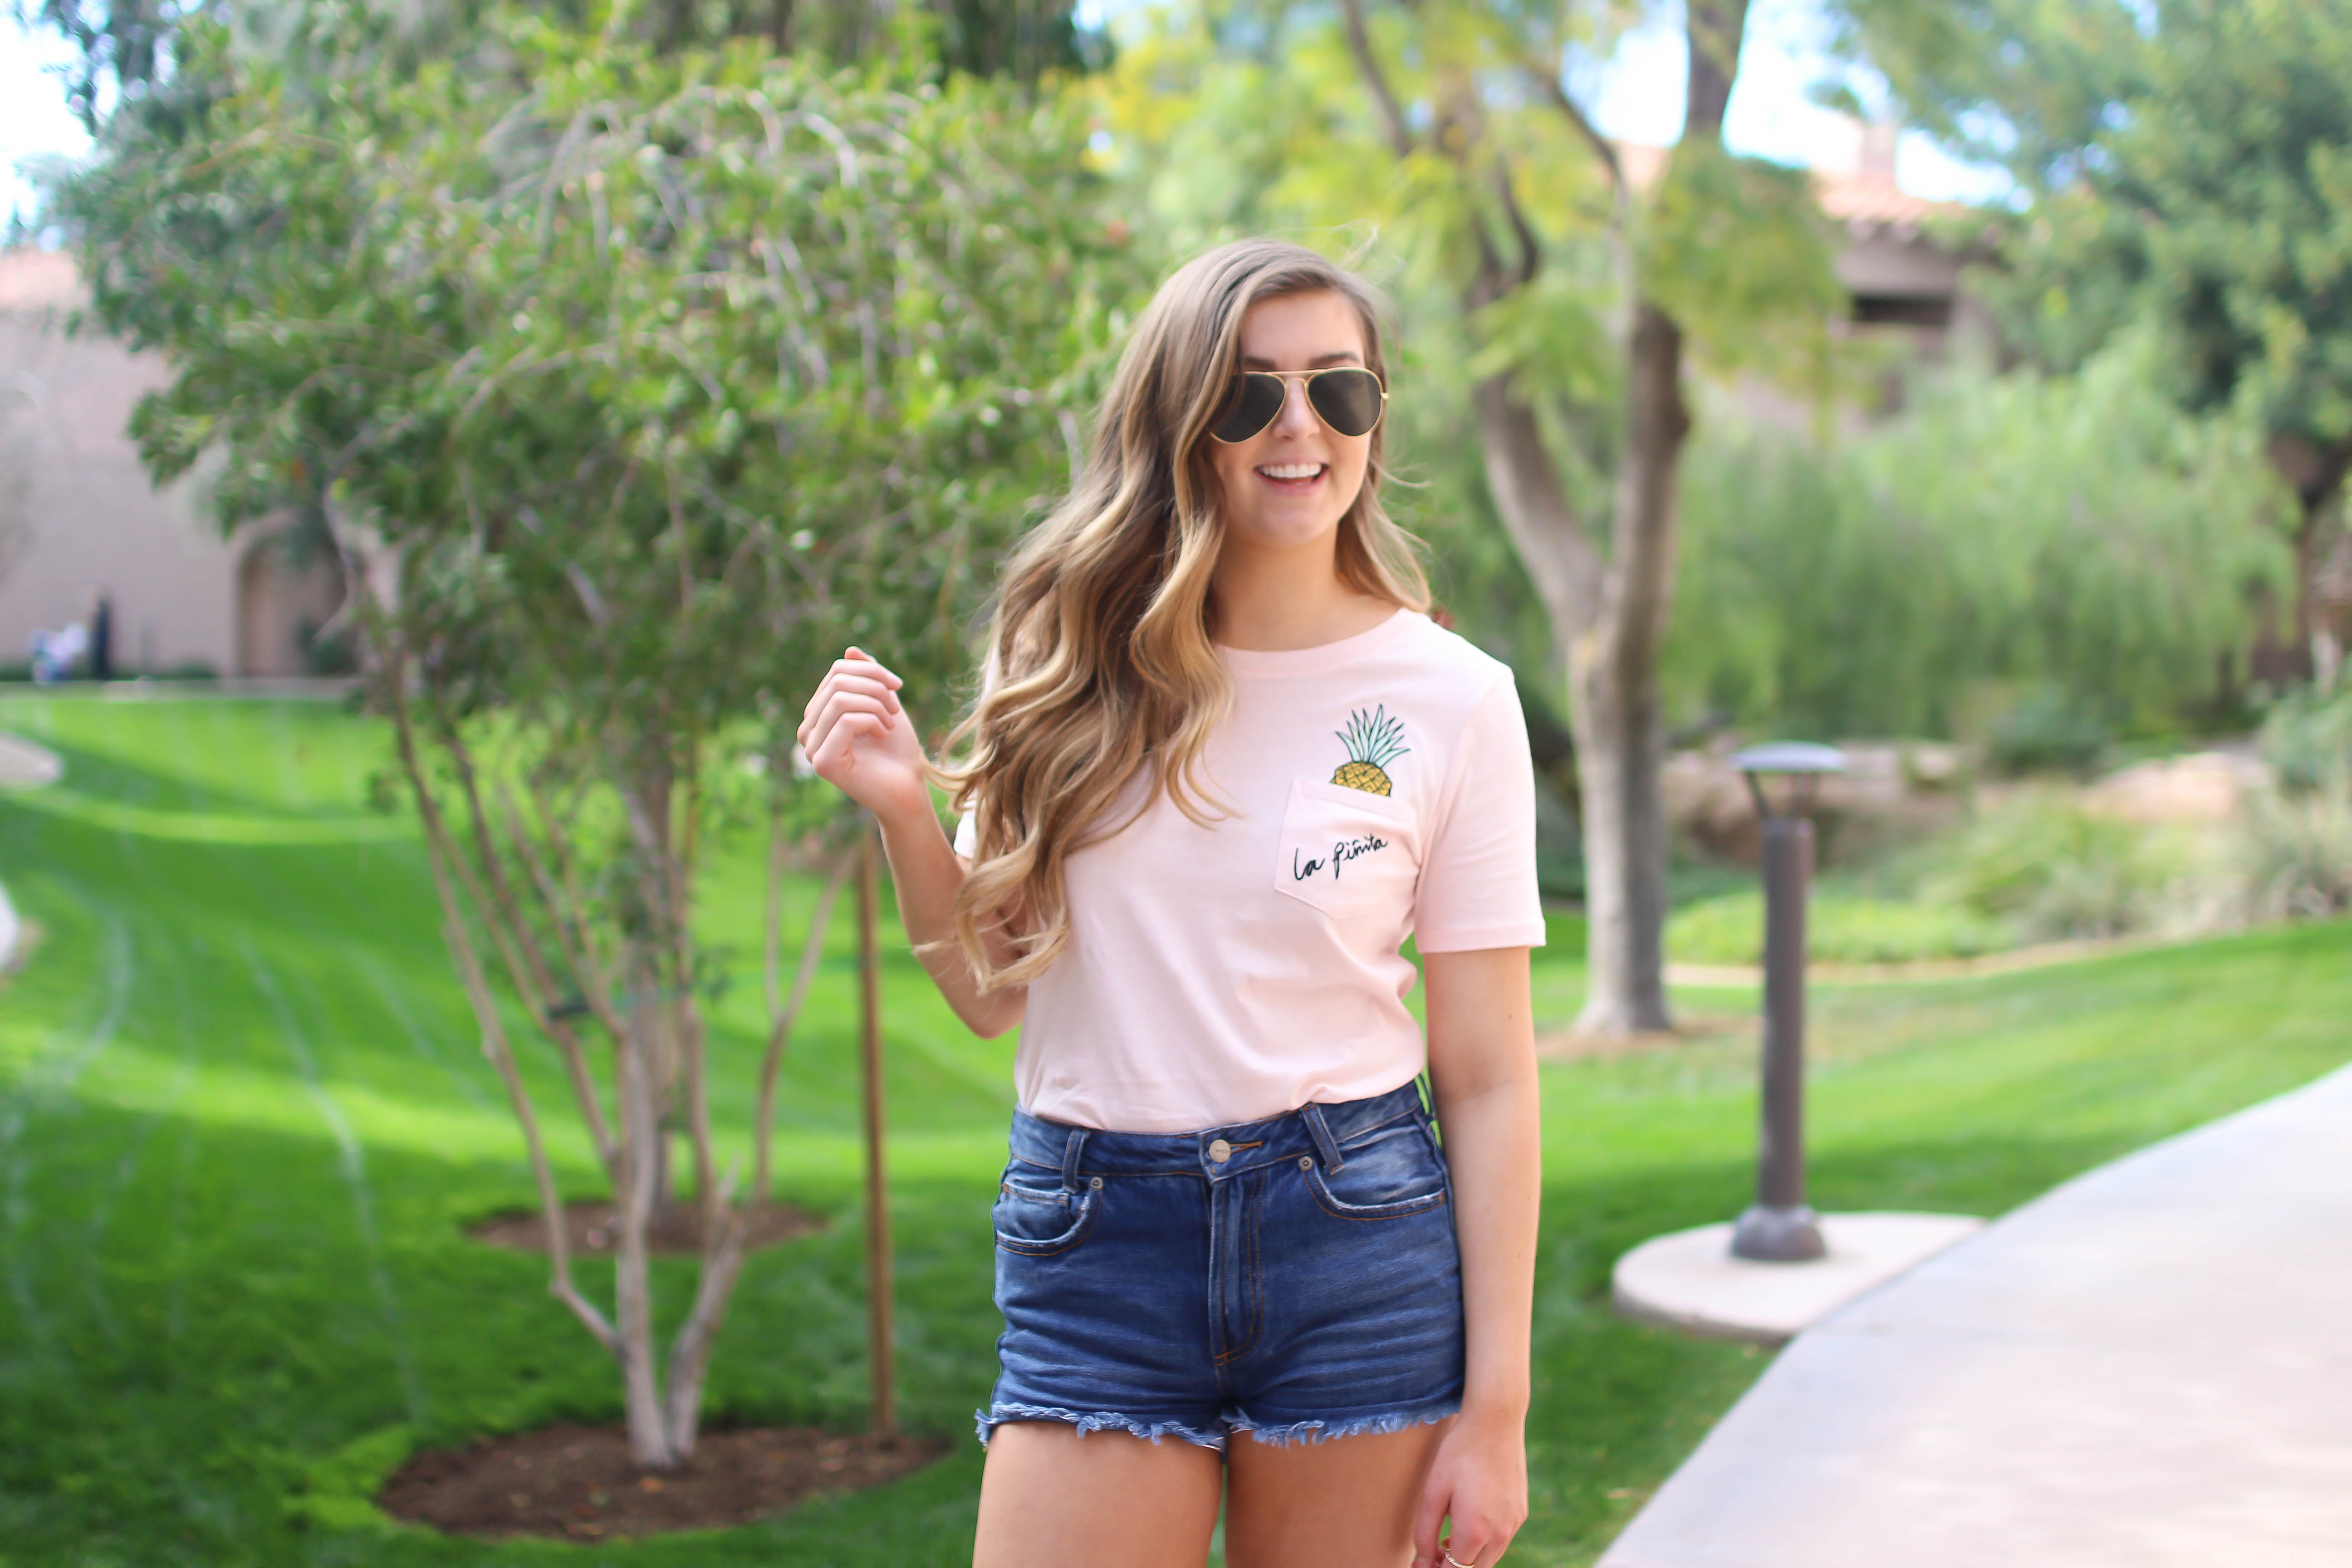 The cutest pink pineapple tee perfect for spring break and summer look! Perfect outfit idea for spring and summer! Paired with jean shorts and Gold New Balance shoes. By Lauren Lindmark on Daily Dose of Charm dailydoseofcharm.com